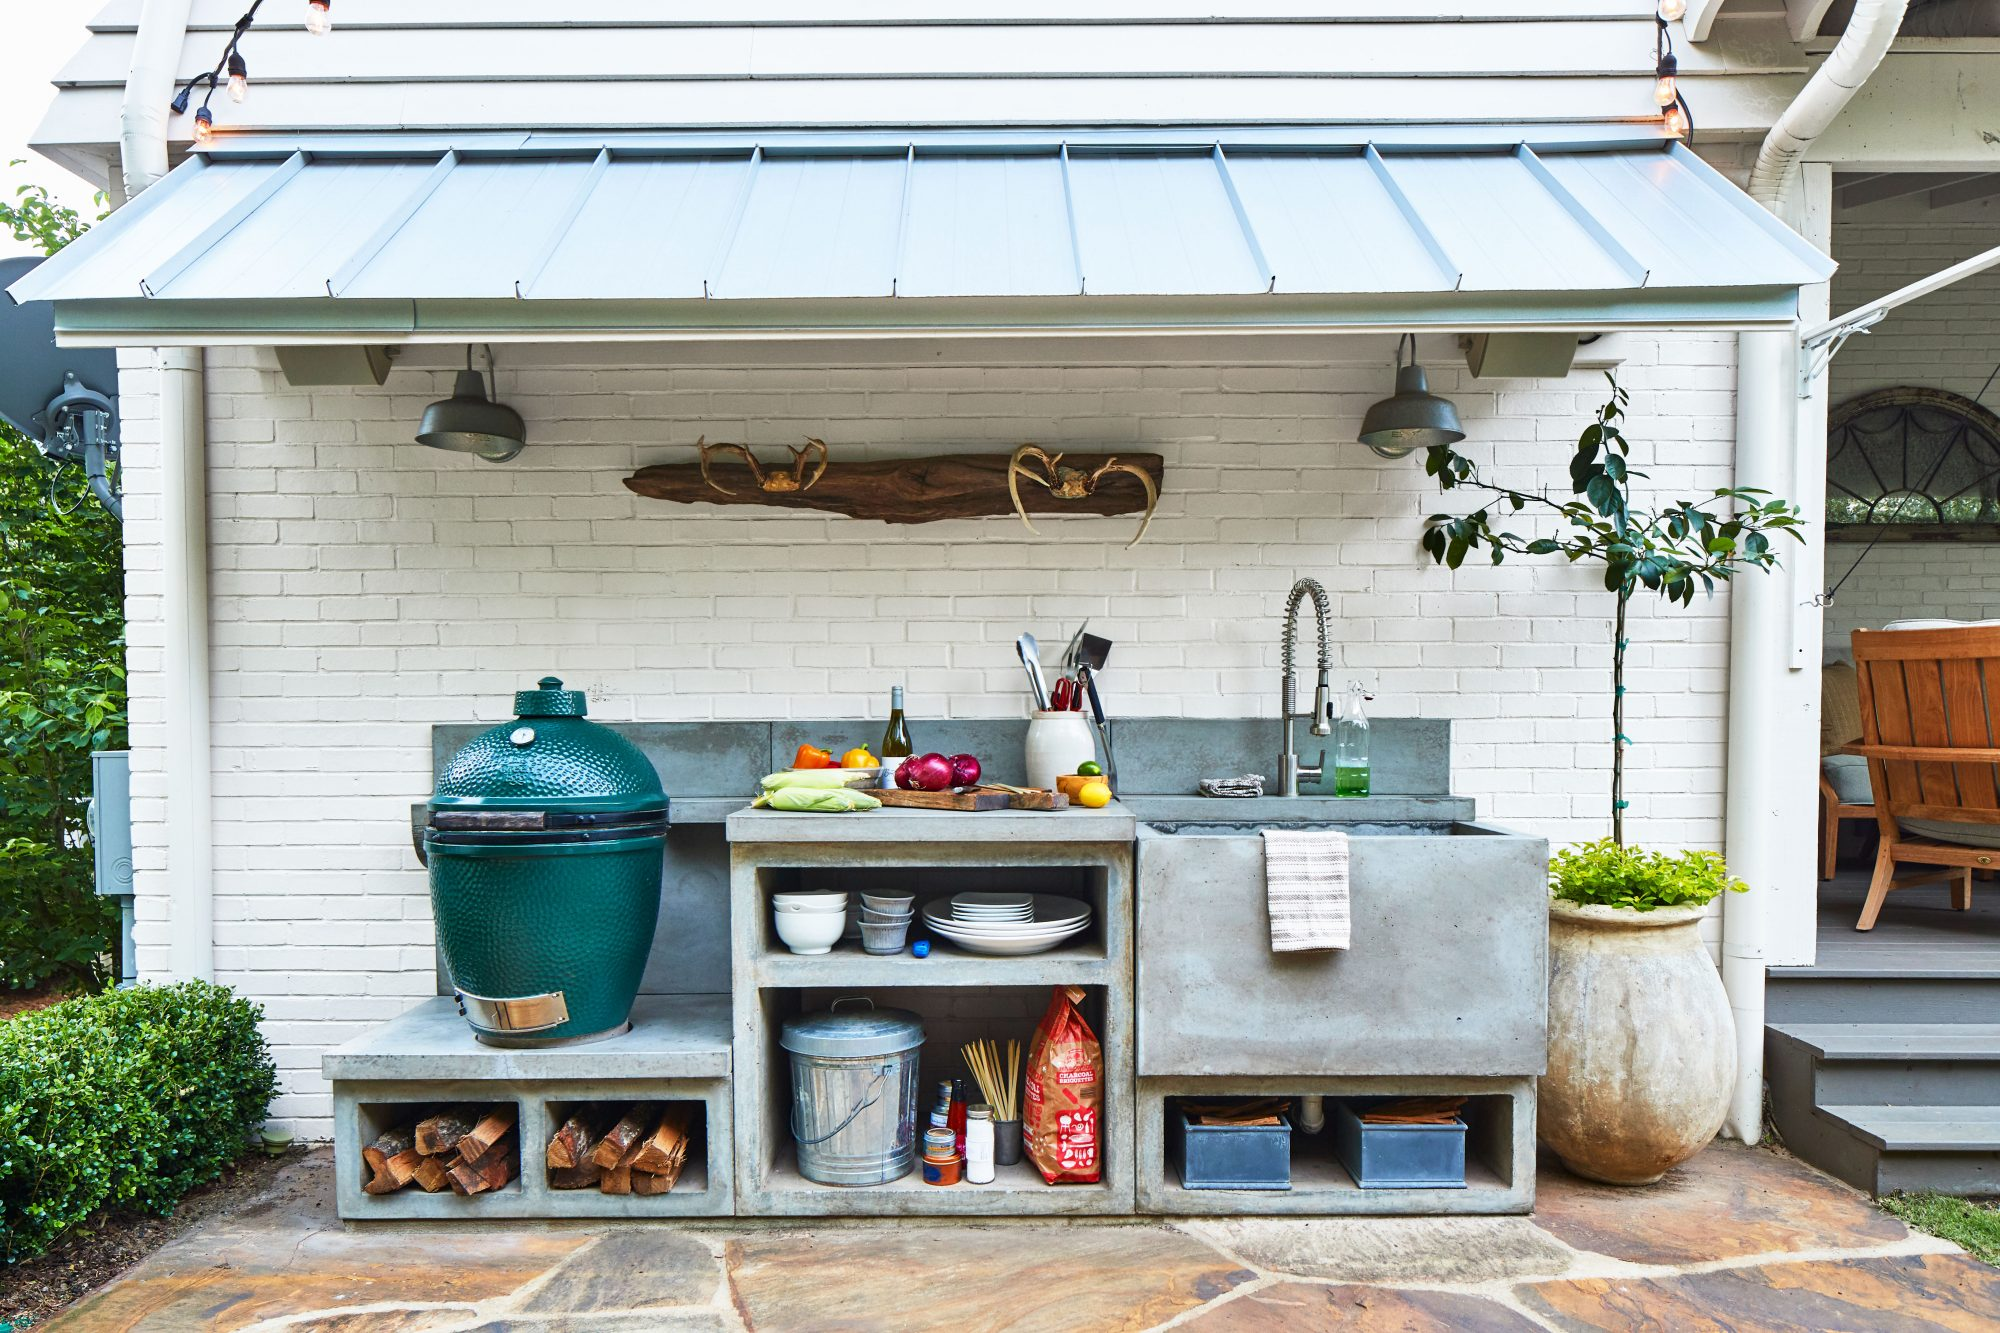 Outdoor Kitchen Made with Concrete